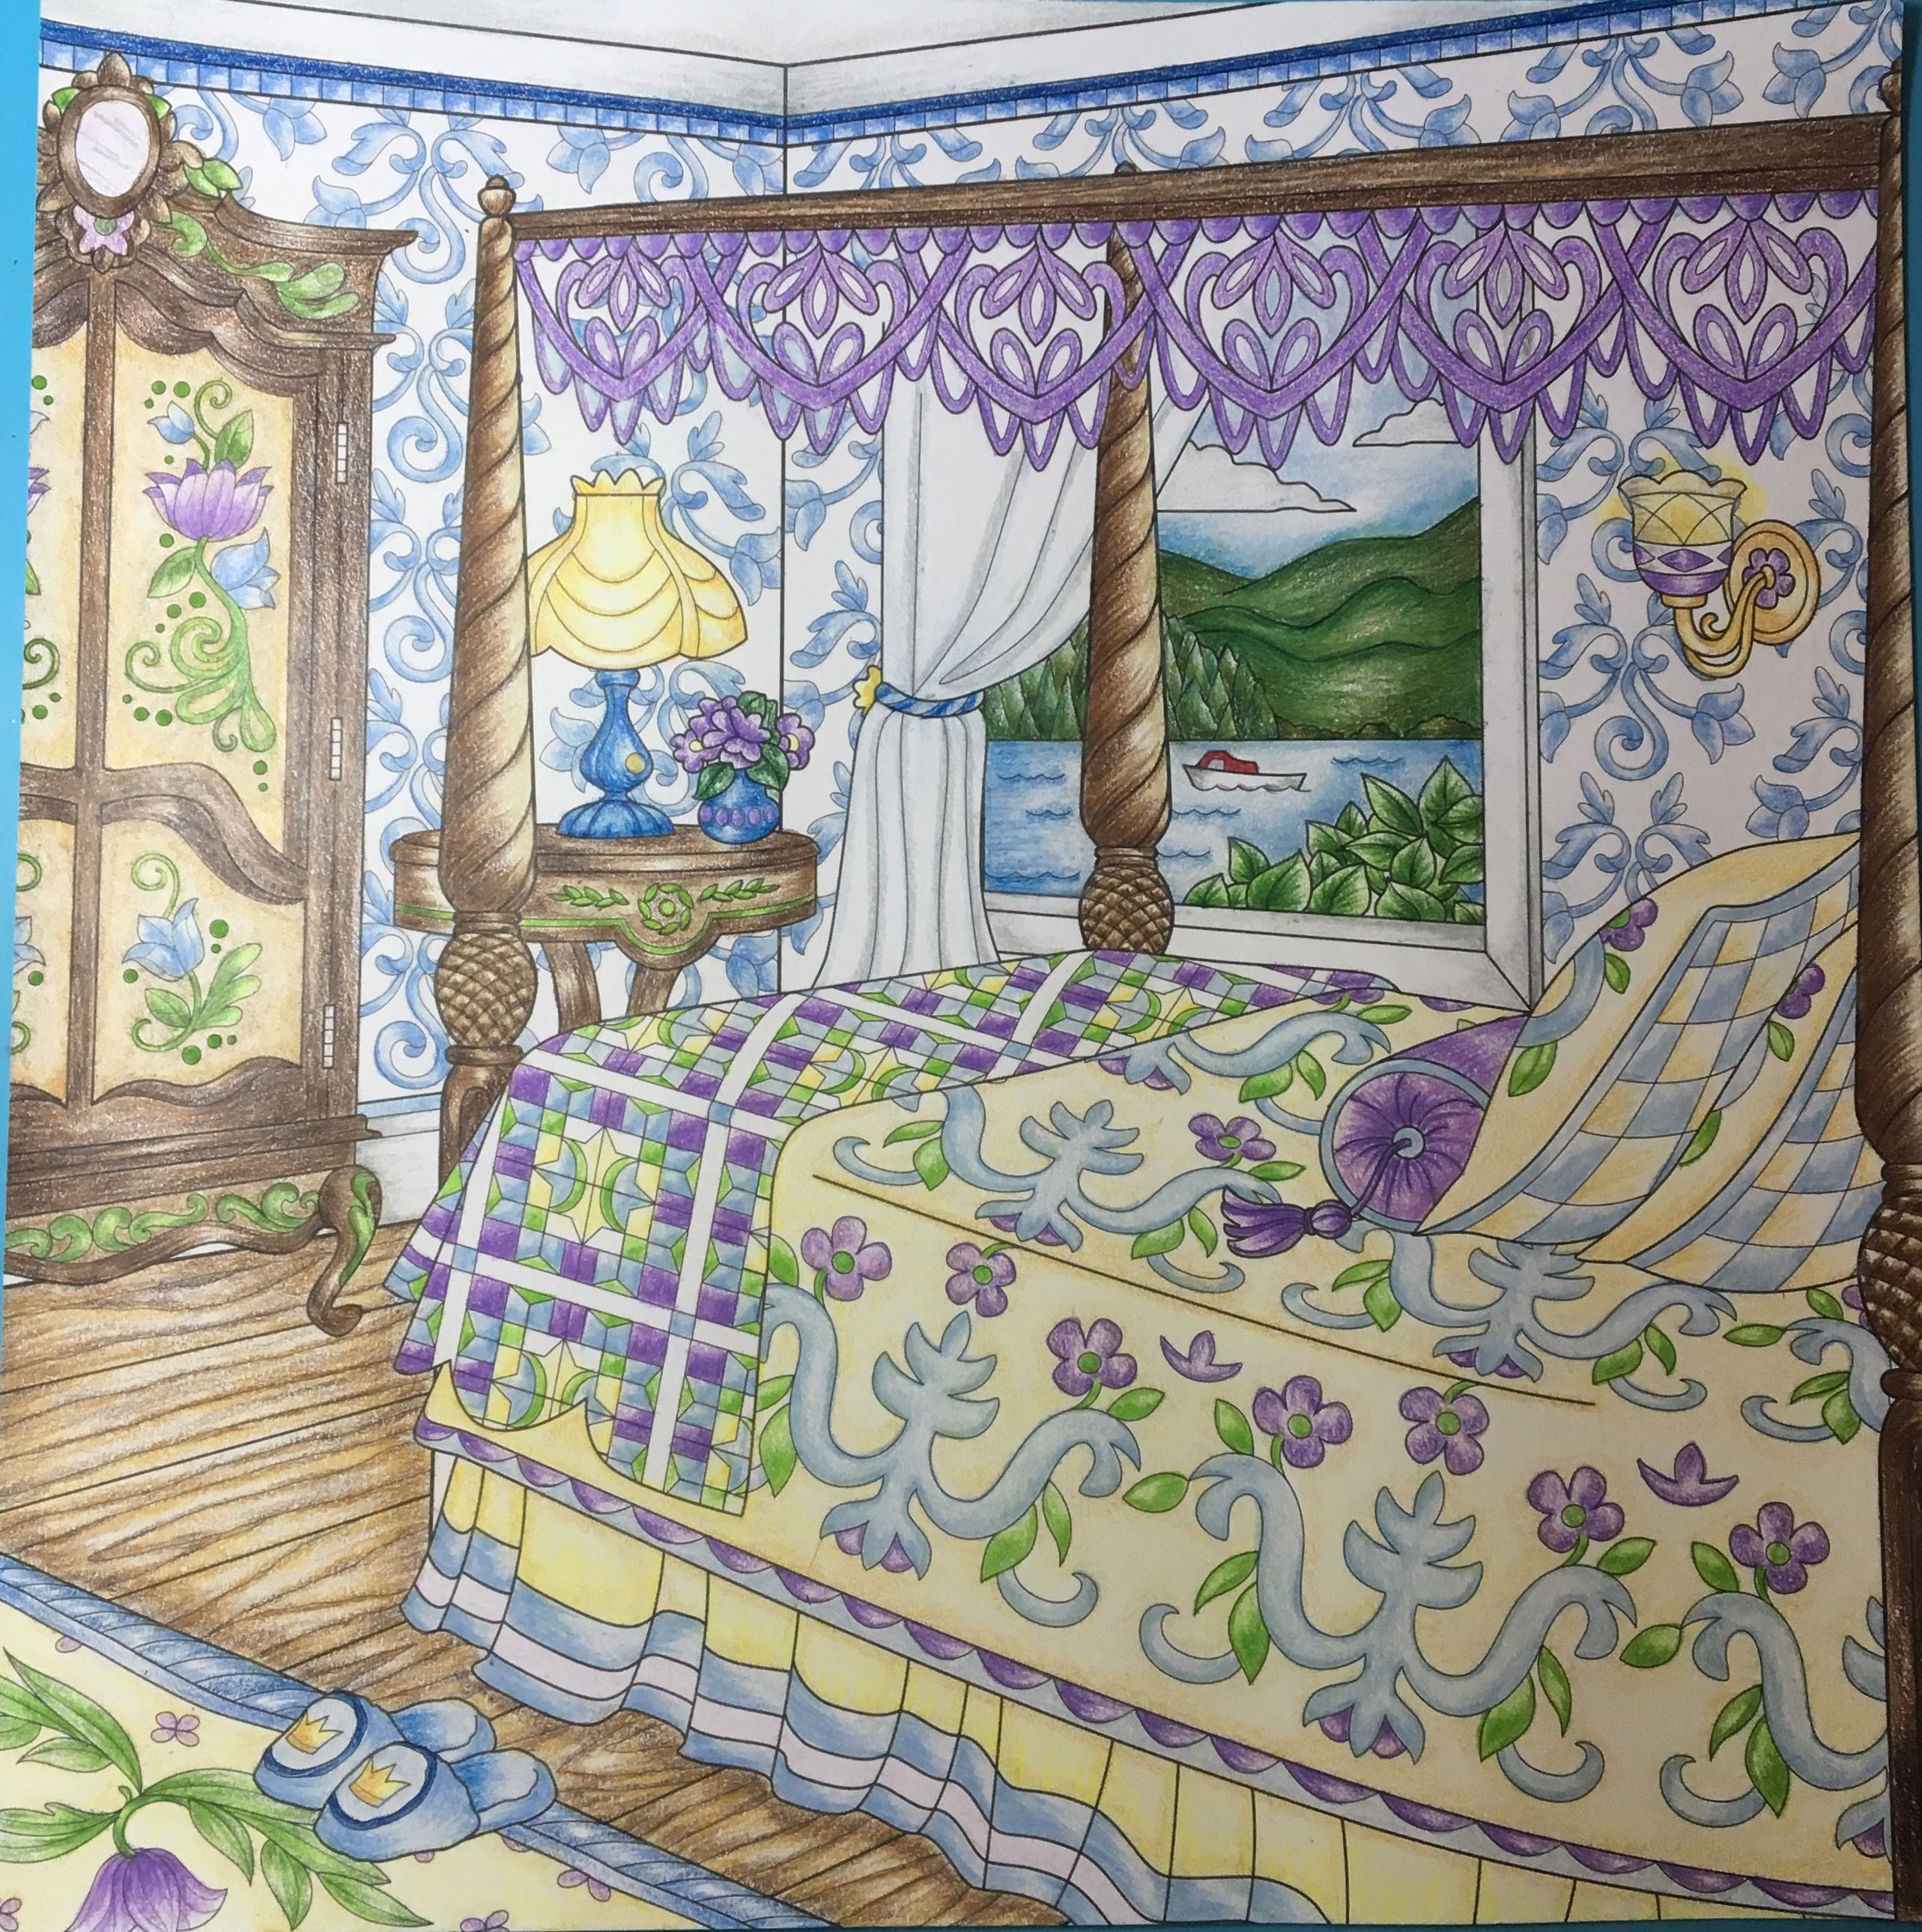 Adult coloring book the inspired room interior design coloring book - From Come Home To Color Coloring Book By Debbie Macomber Colored By Linda